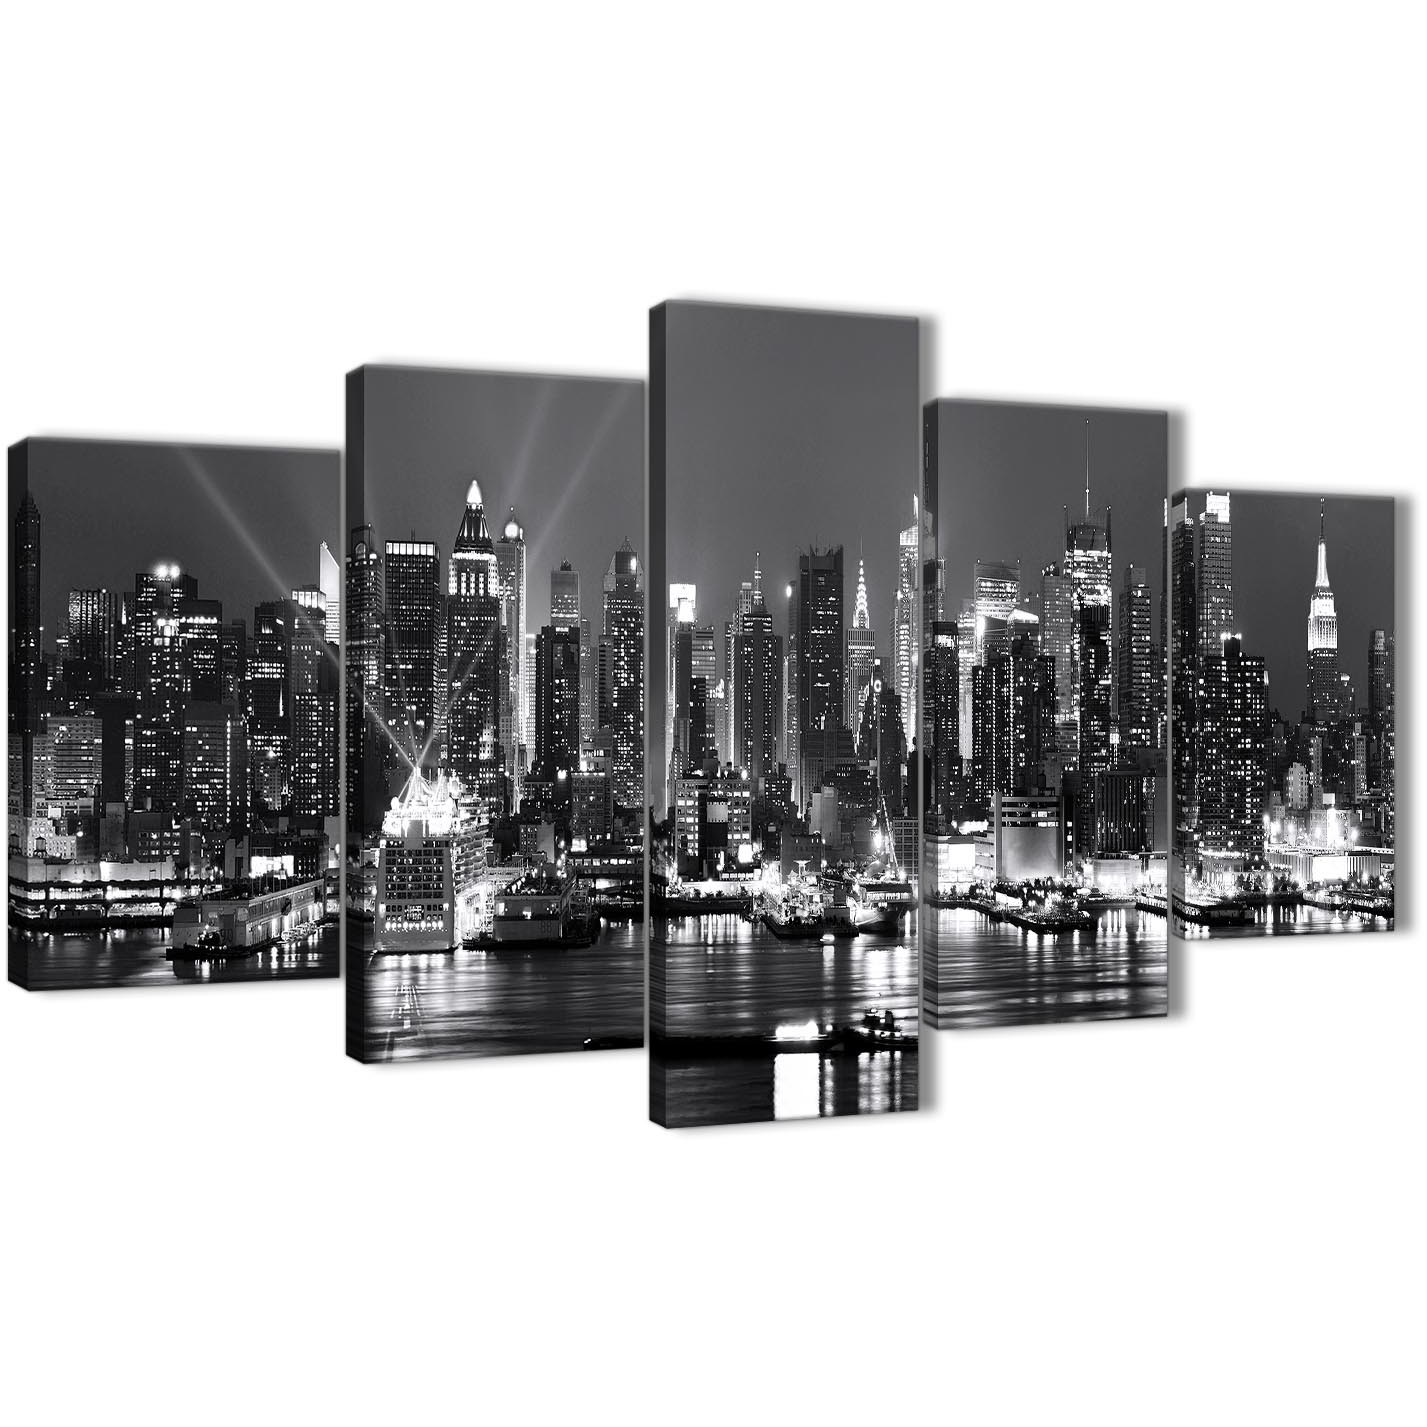 New York Nyc Skyline City Single Canvas Wall Art Picture: 5 Panel Landscape Canvas Wall Art Prints